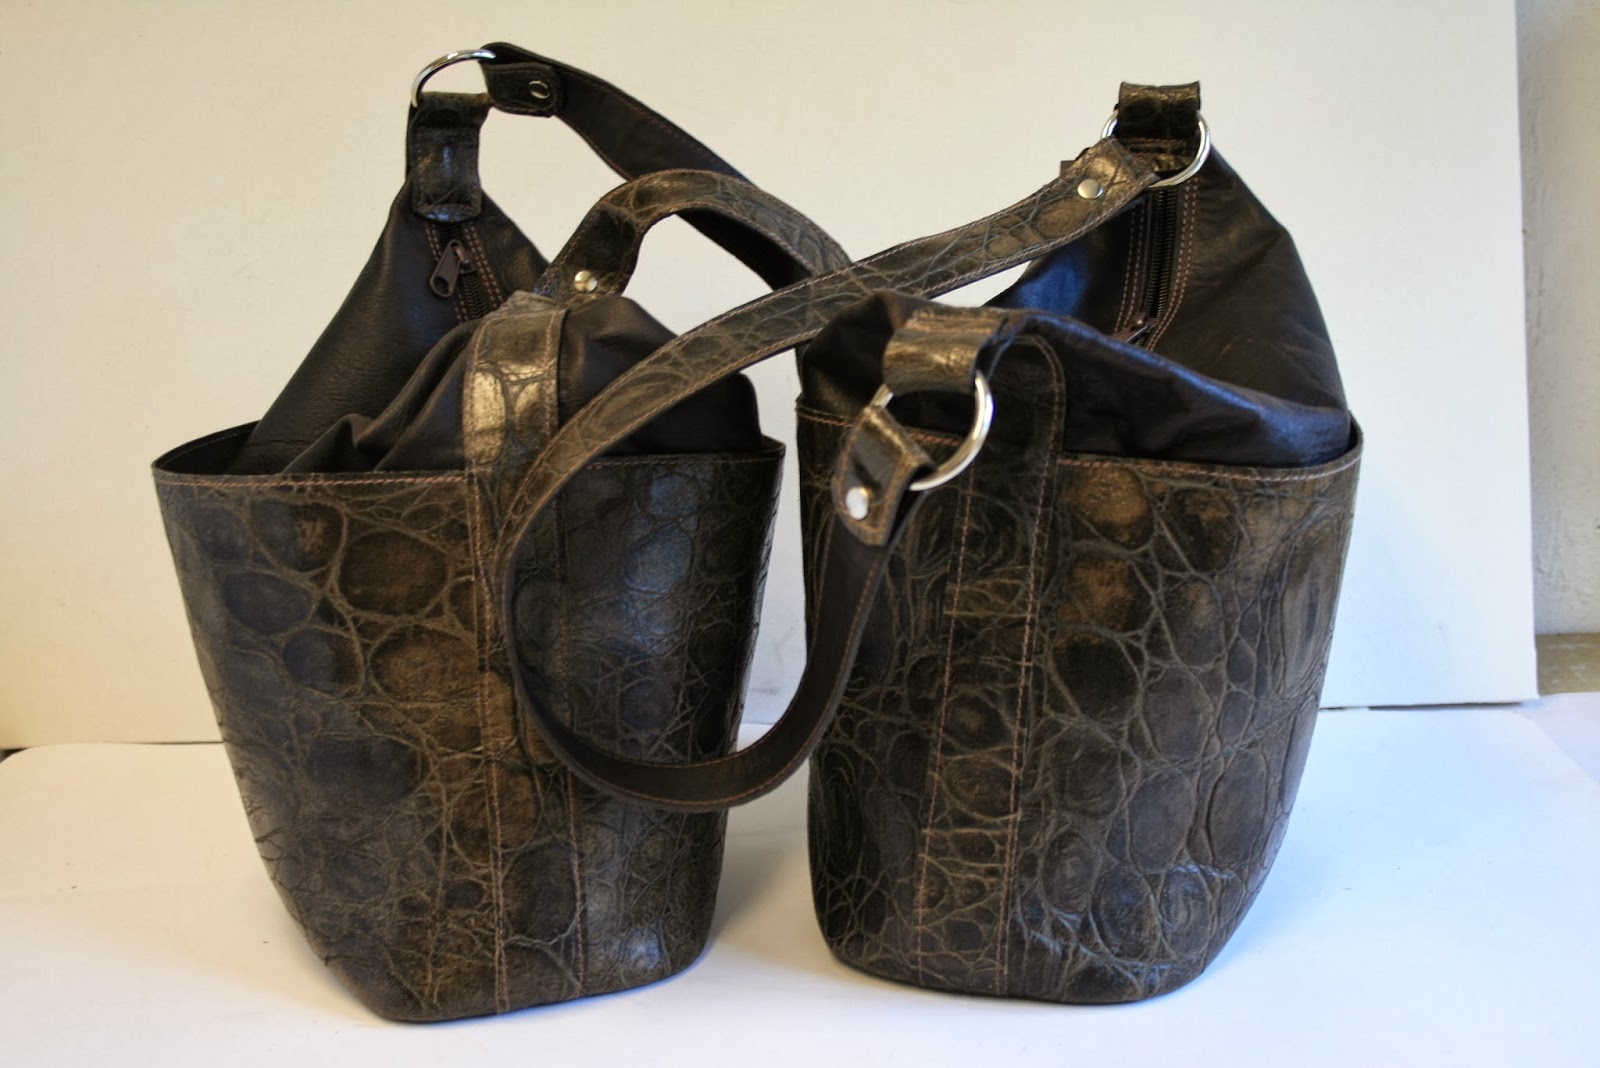 Handmade leather bucket bags